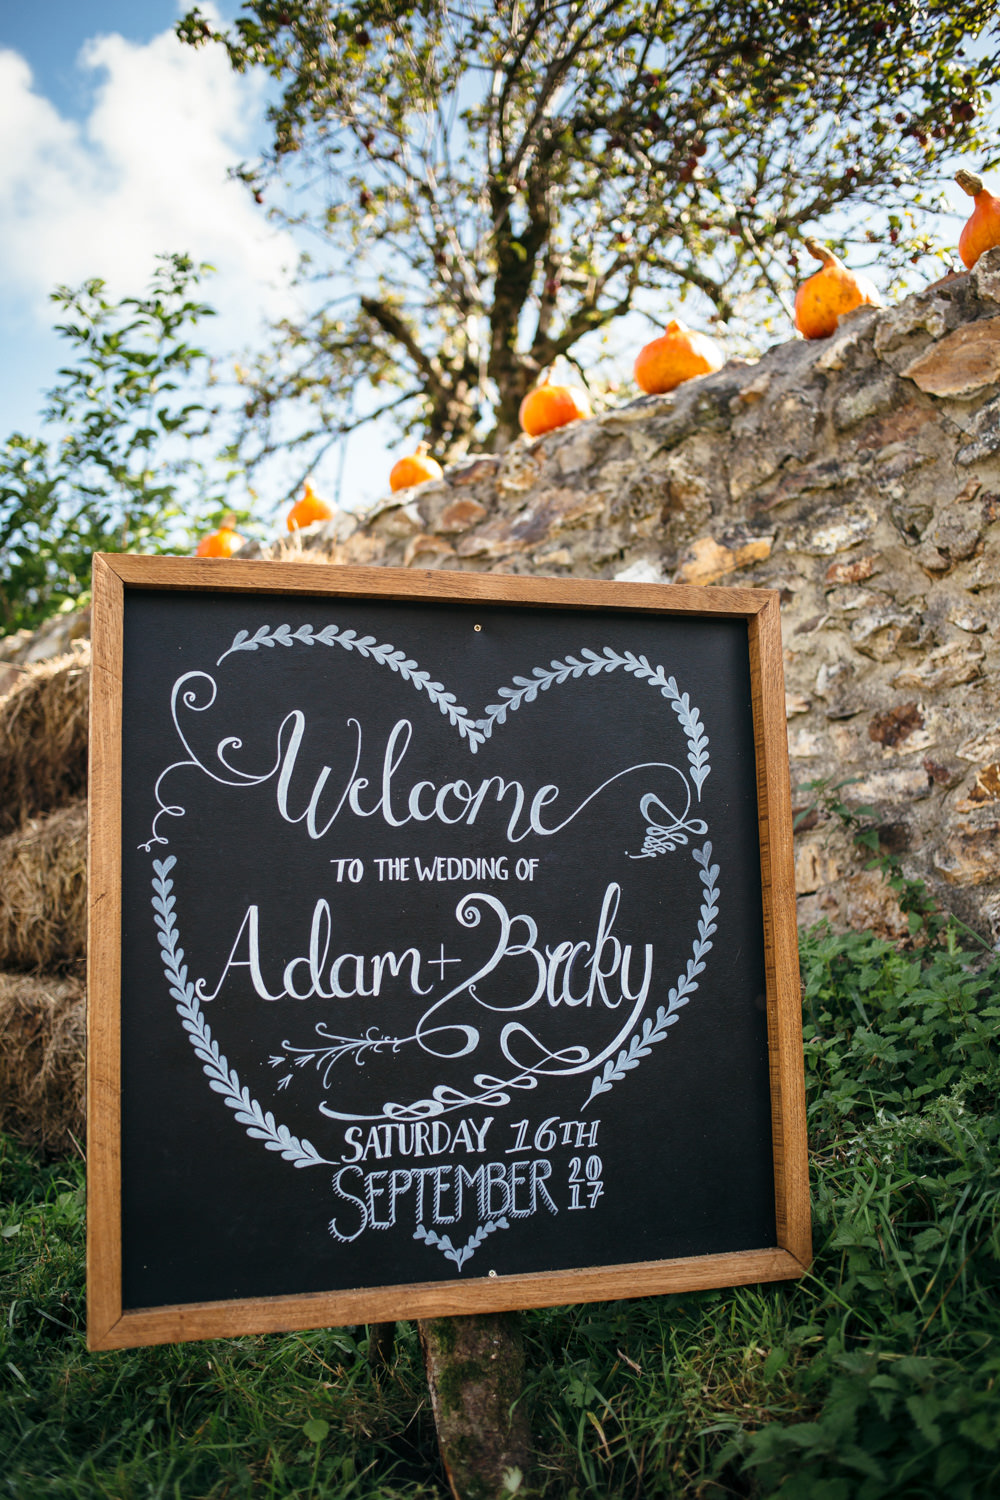 Welcome Sign Chalk Black Coart Heart Calligraphy Devon Garden Wedding Tipi Freckle Photography